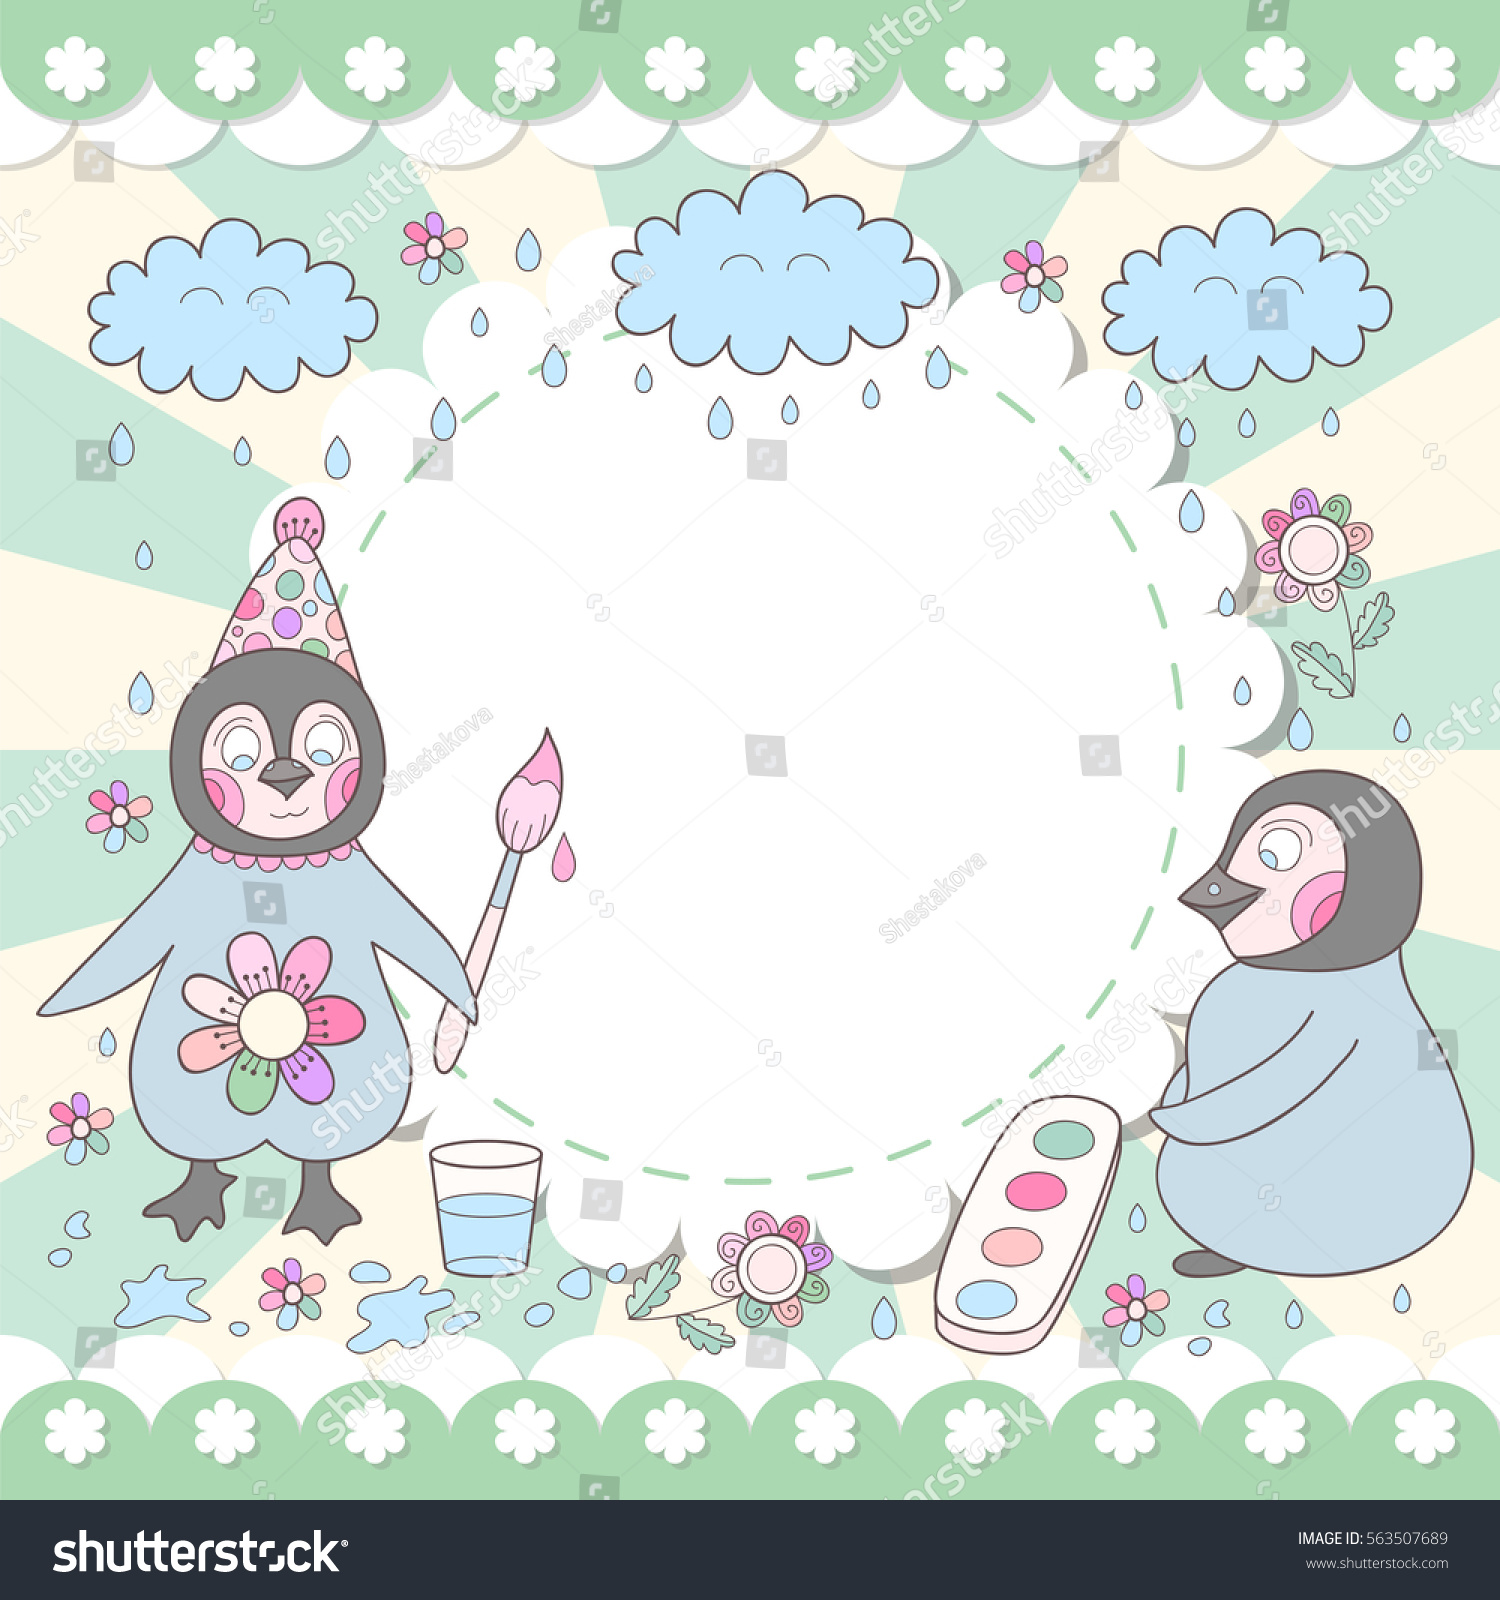 Cute Happy Birthday Card With Drawing Penguins Adorable Photo Frame